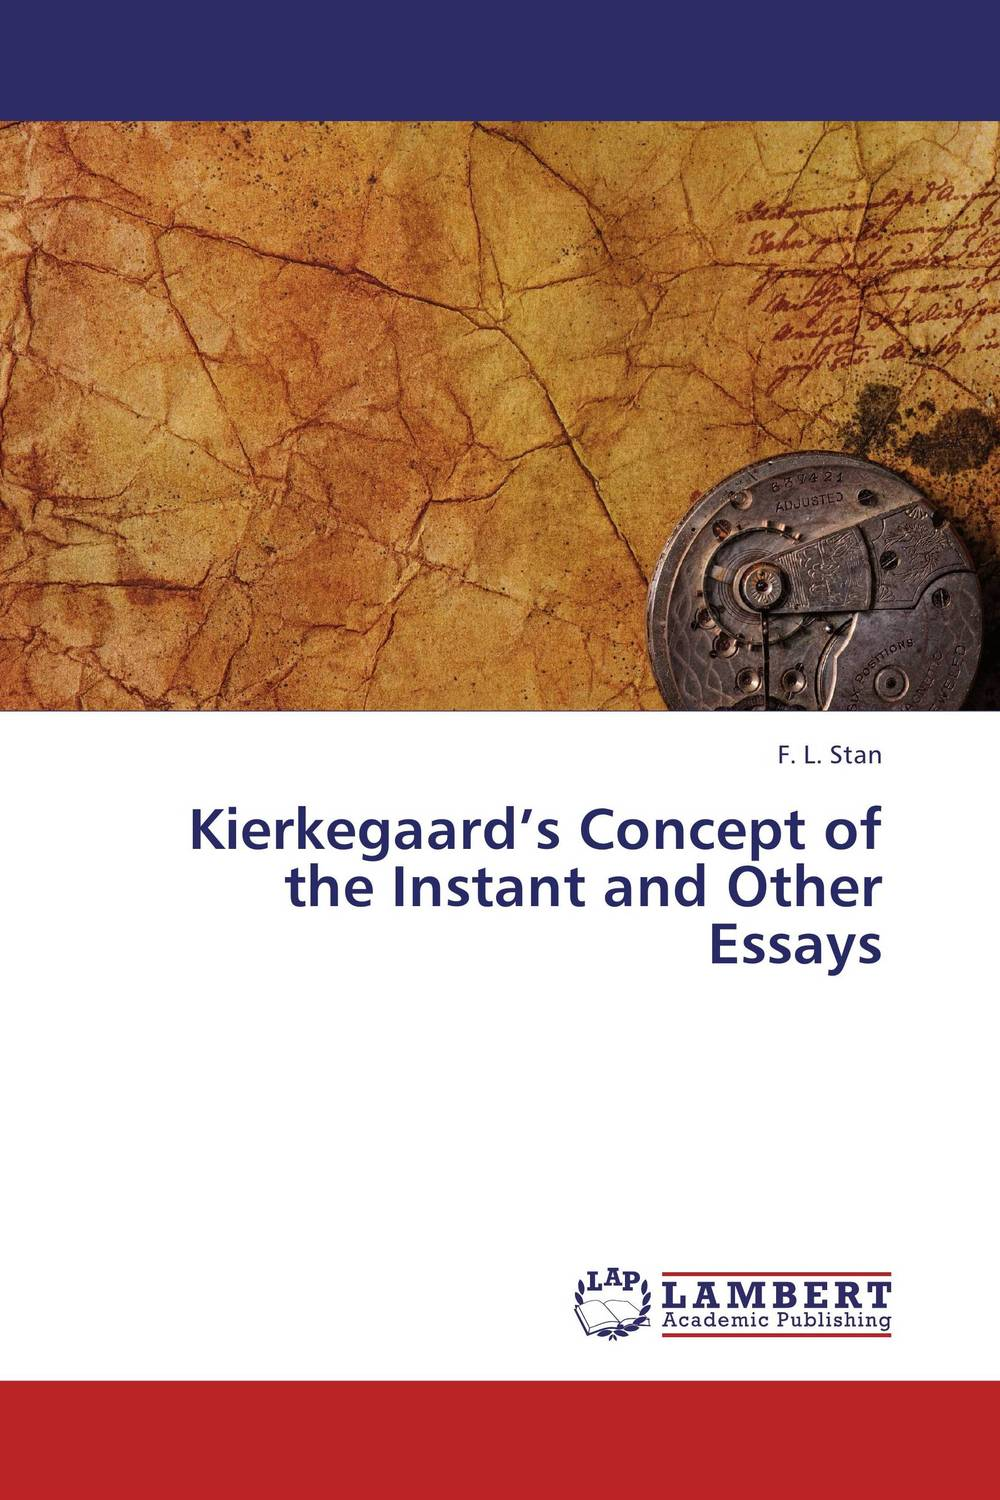 Kierkegaard's Concept of the Instant and Other Essays vampire hunter d volume 6 pilgrimage of the sacred and the profane